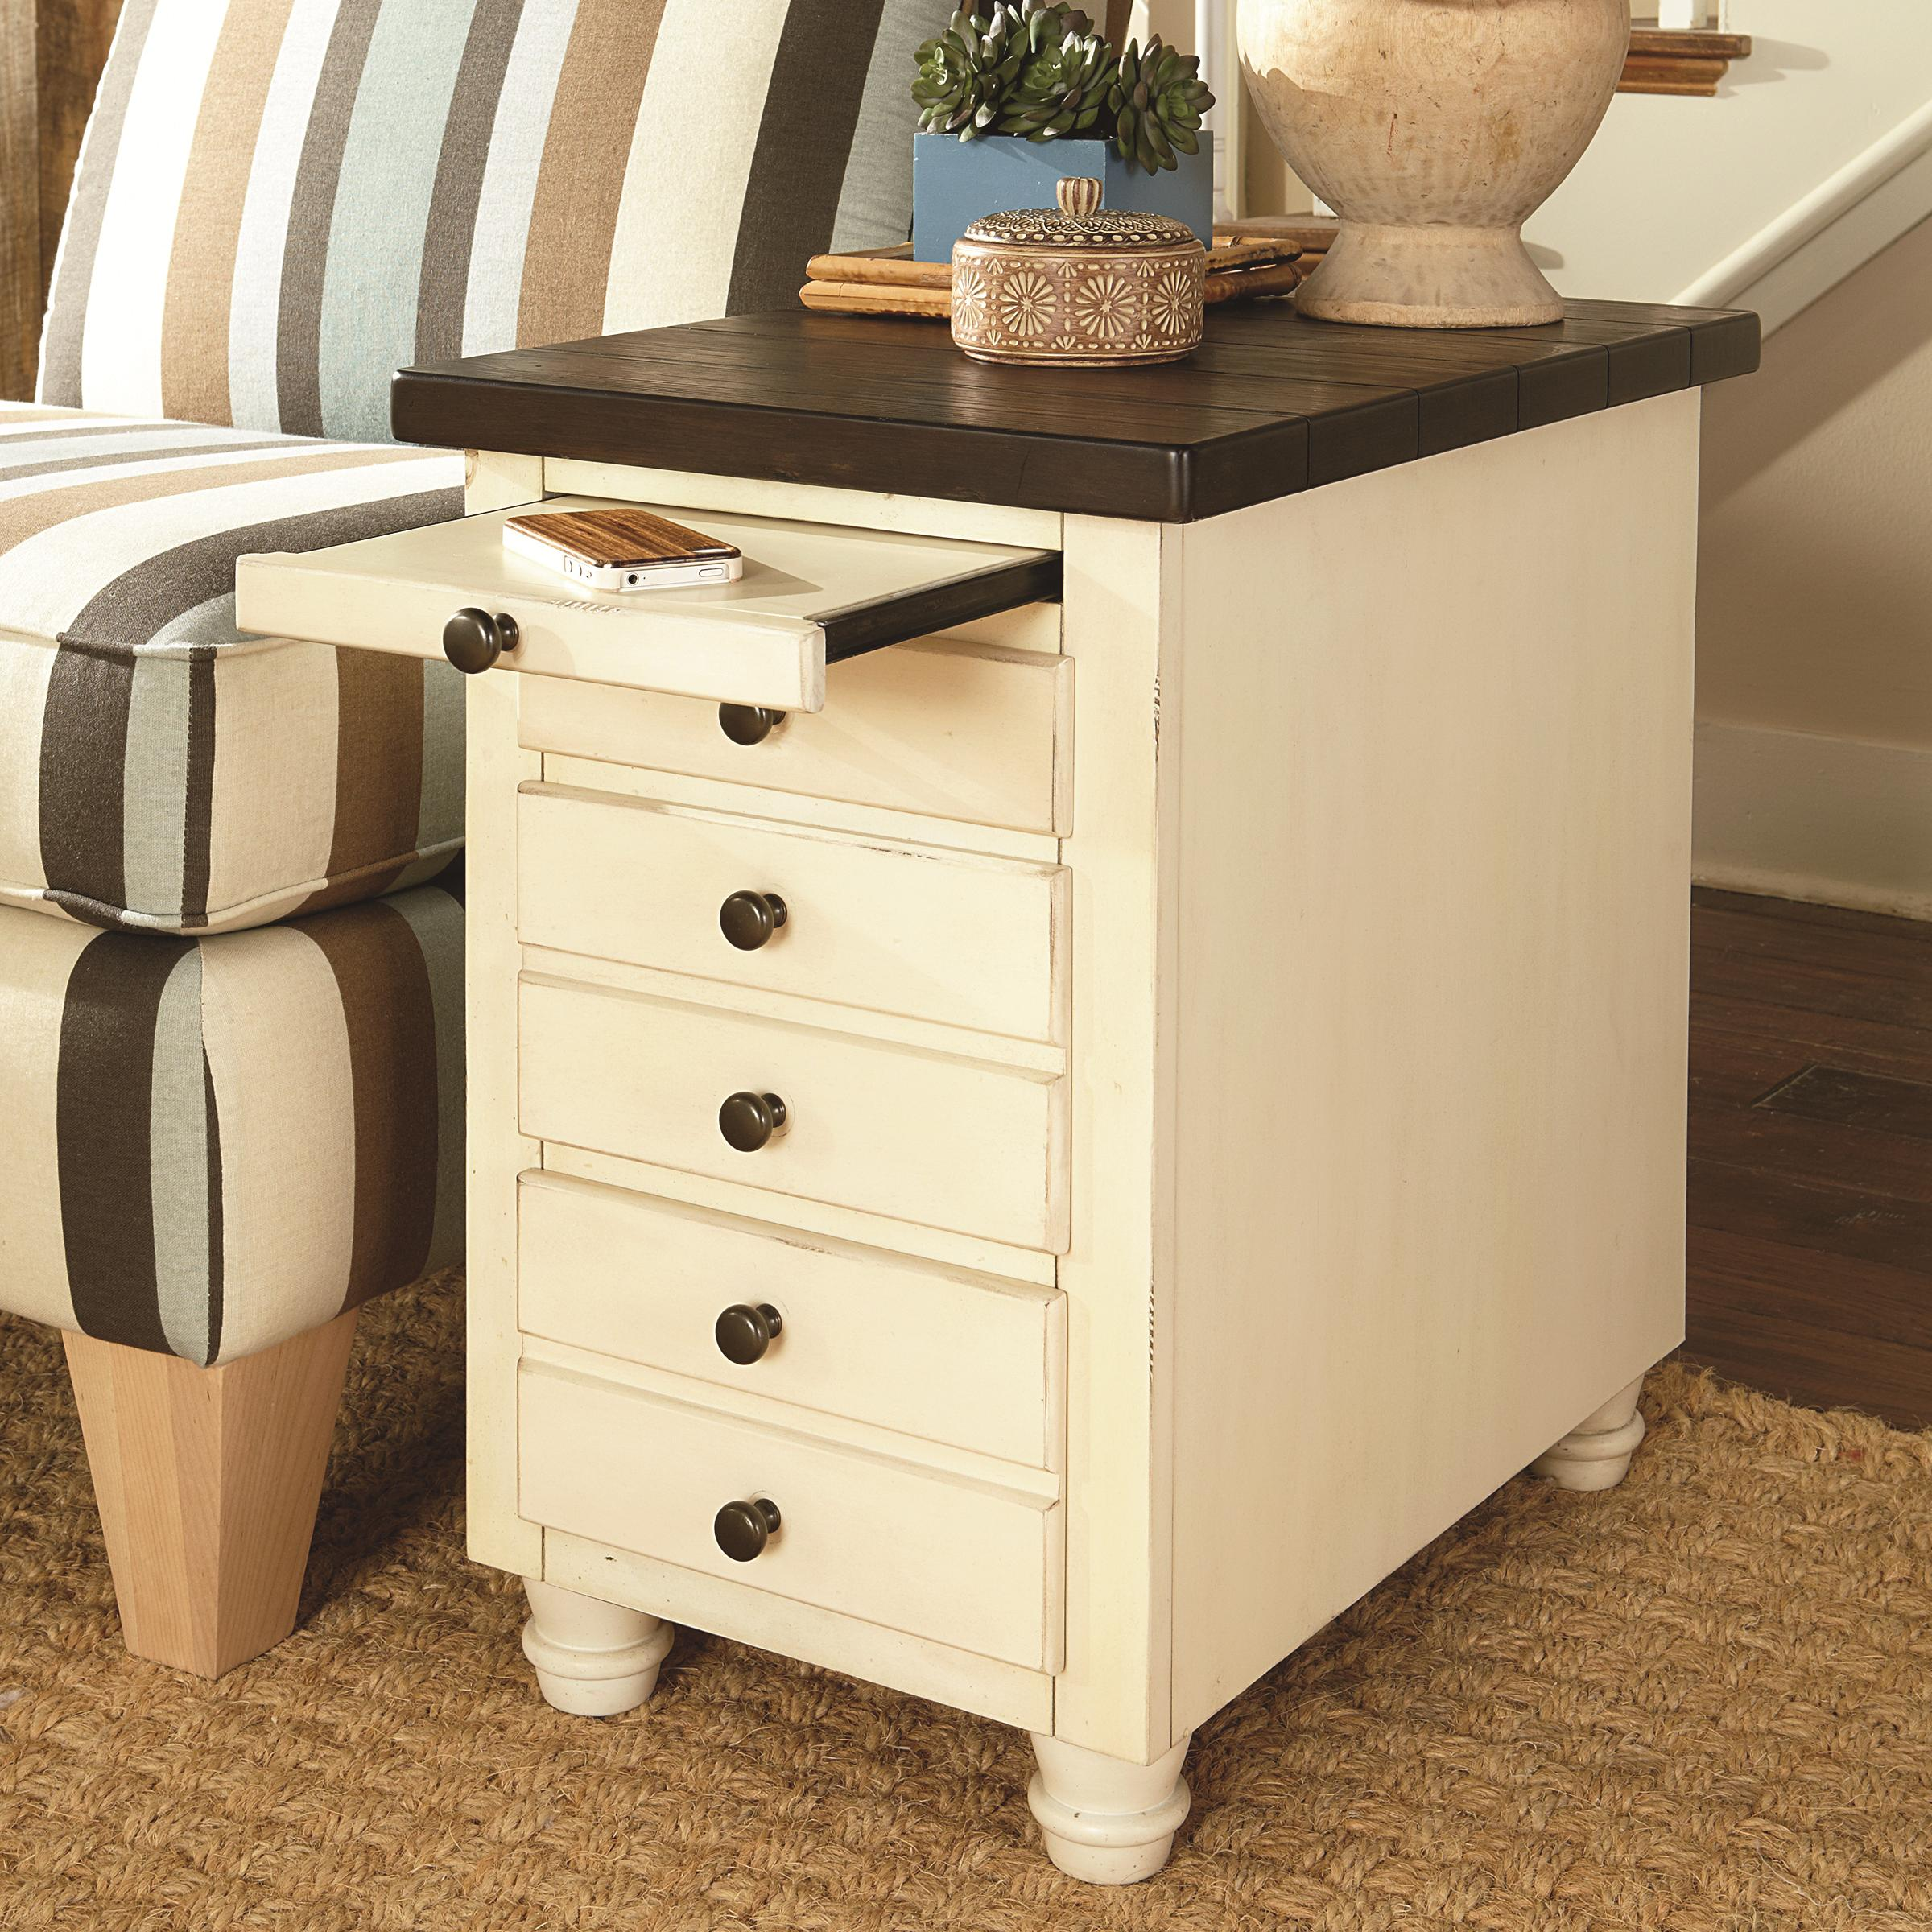 Charmant Chairside Table Chest